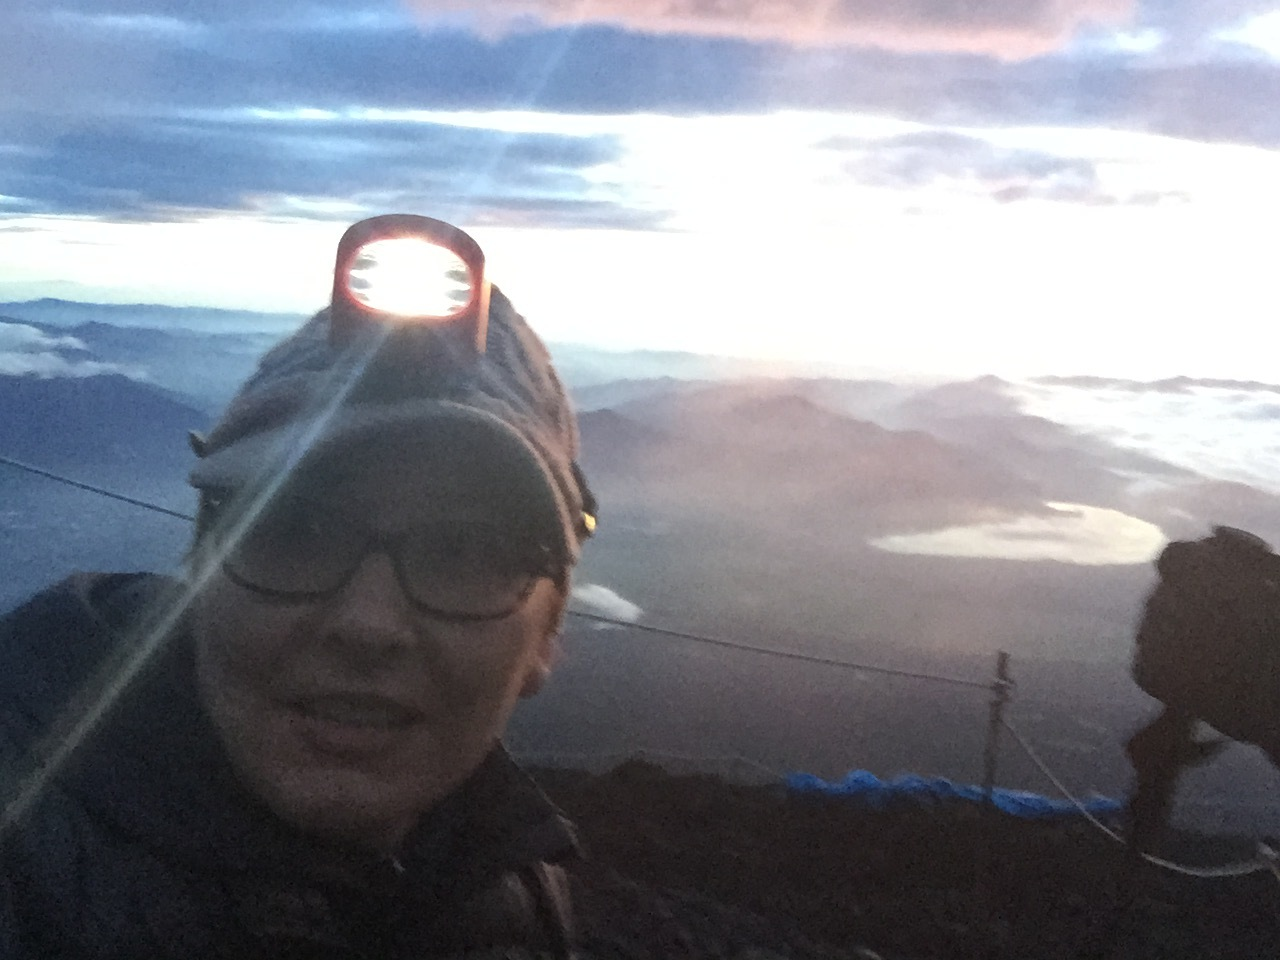 Me watching the sunrise over Japan from the summit of Mount Fuji. I CLIMBED A FREAKIN' MOUNTAIN (2015)!!!